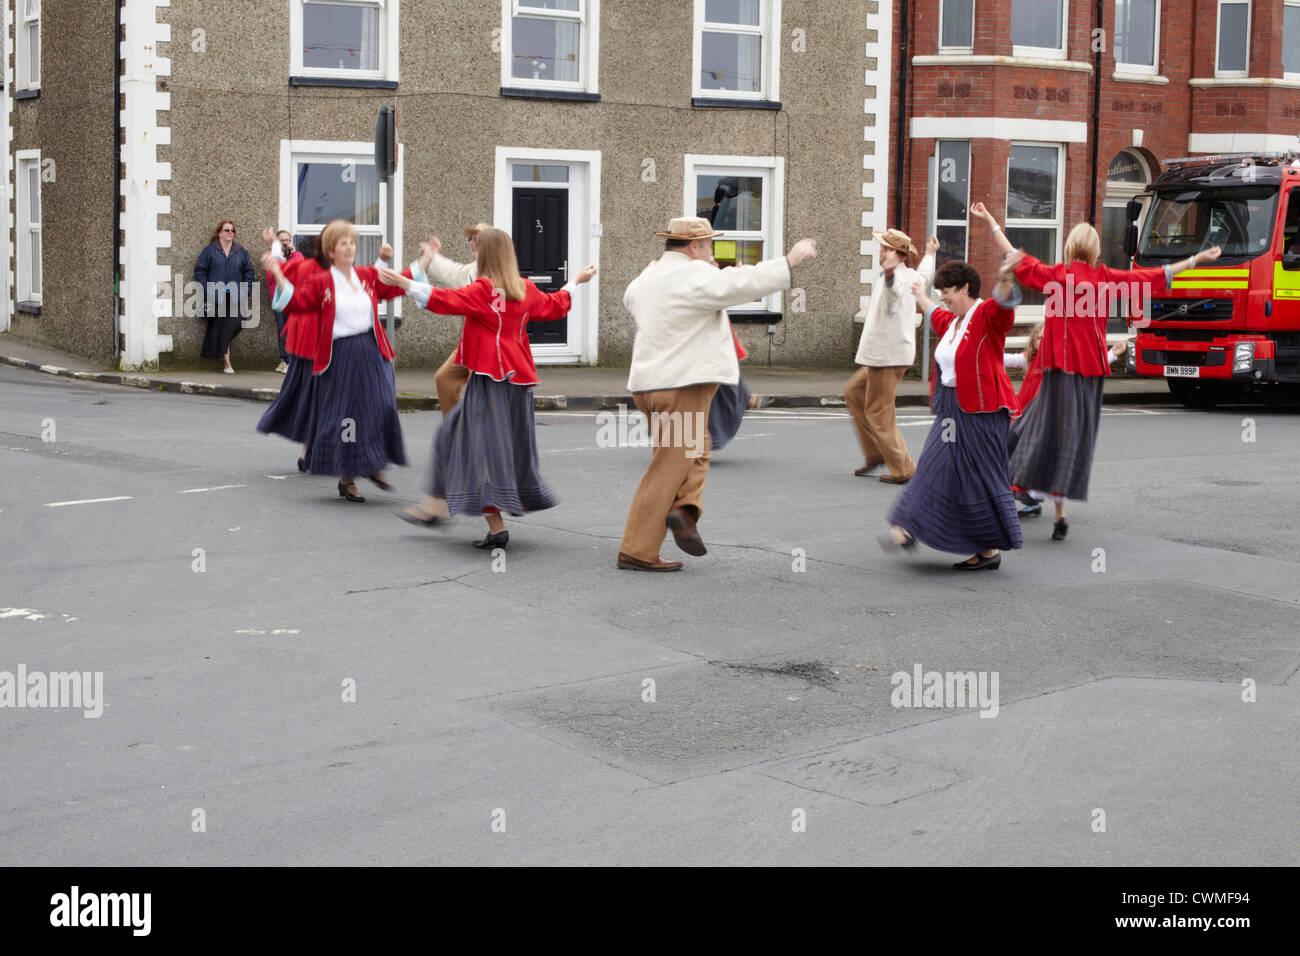 Manx Country dancing - Stock Image